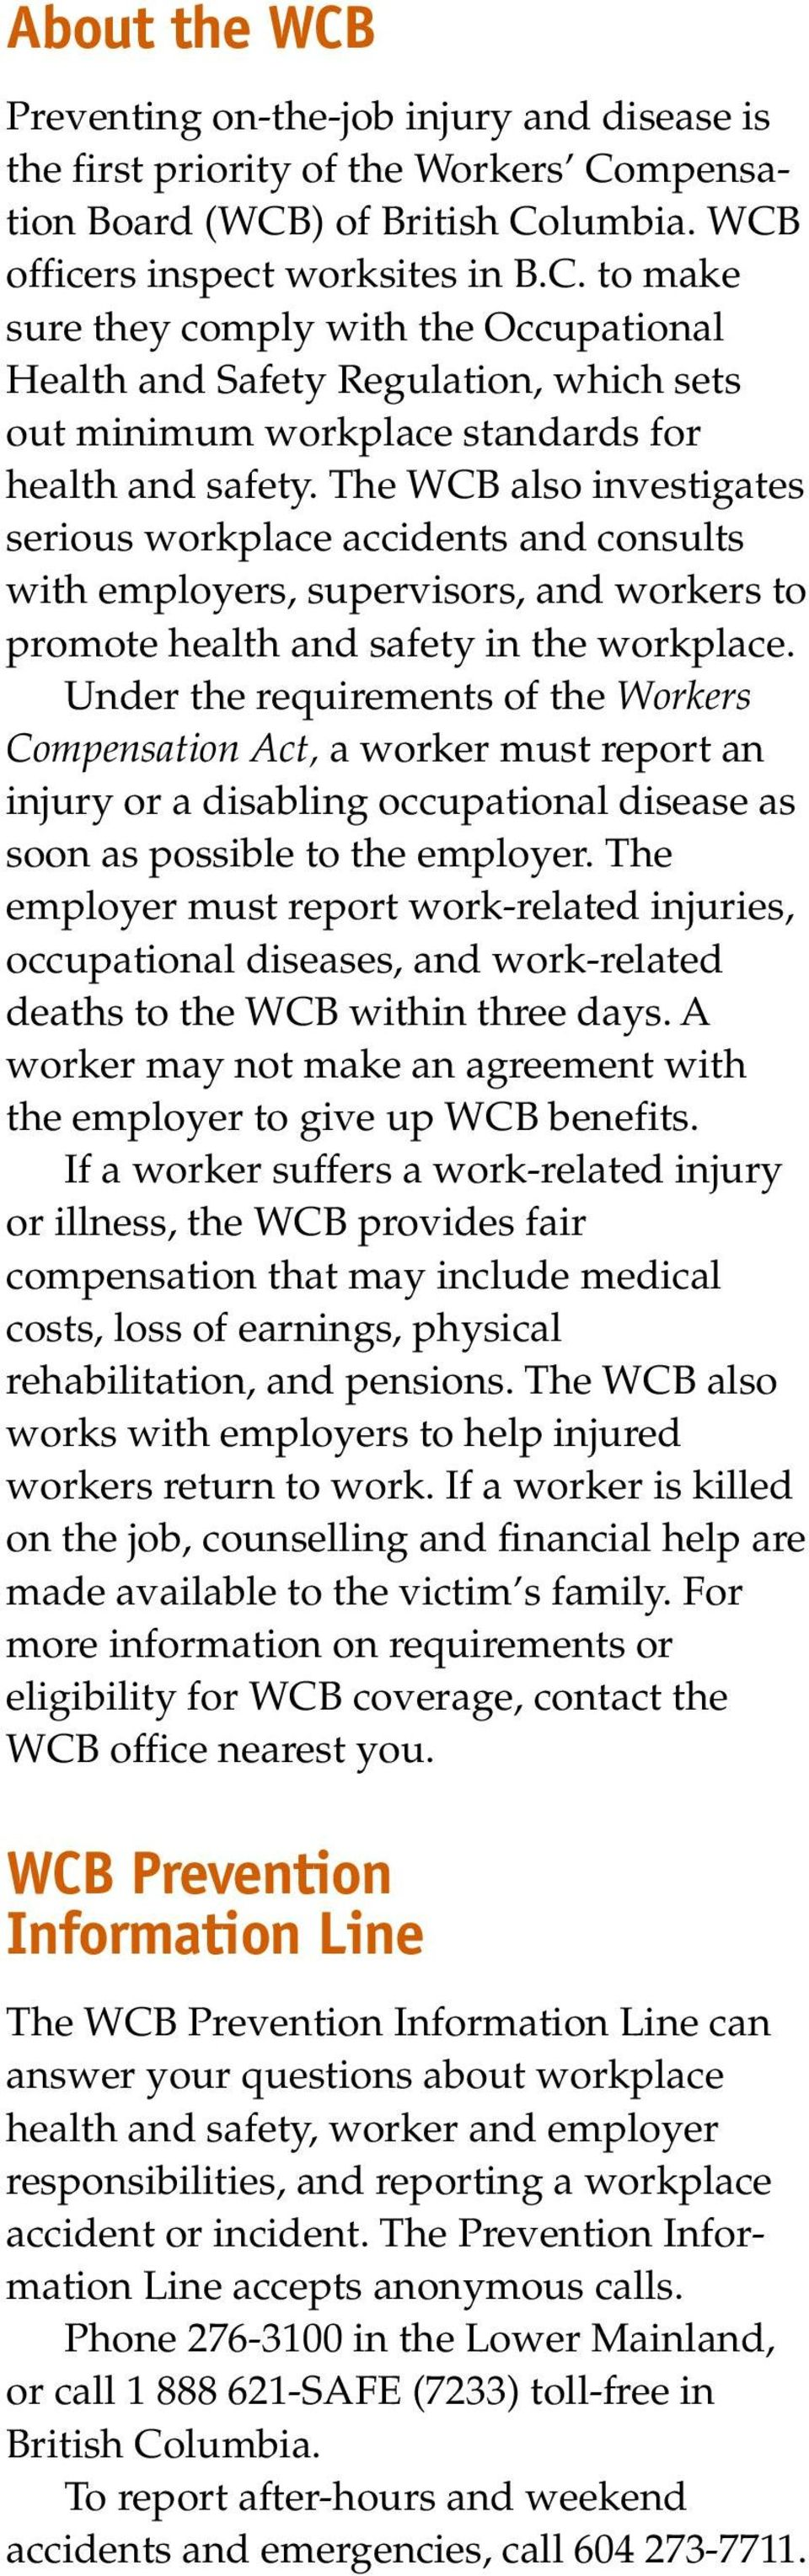 Under the requirements of the Workers Compensation Act, a worker must report an injury or a disabling occupational disease as soon as possible to the employer.